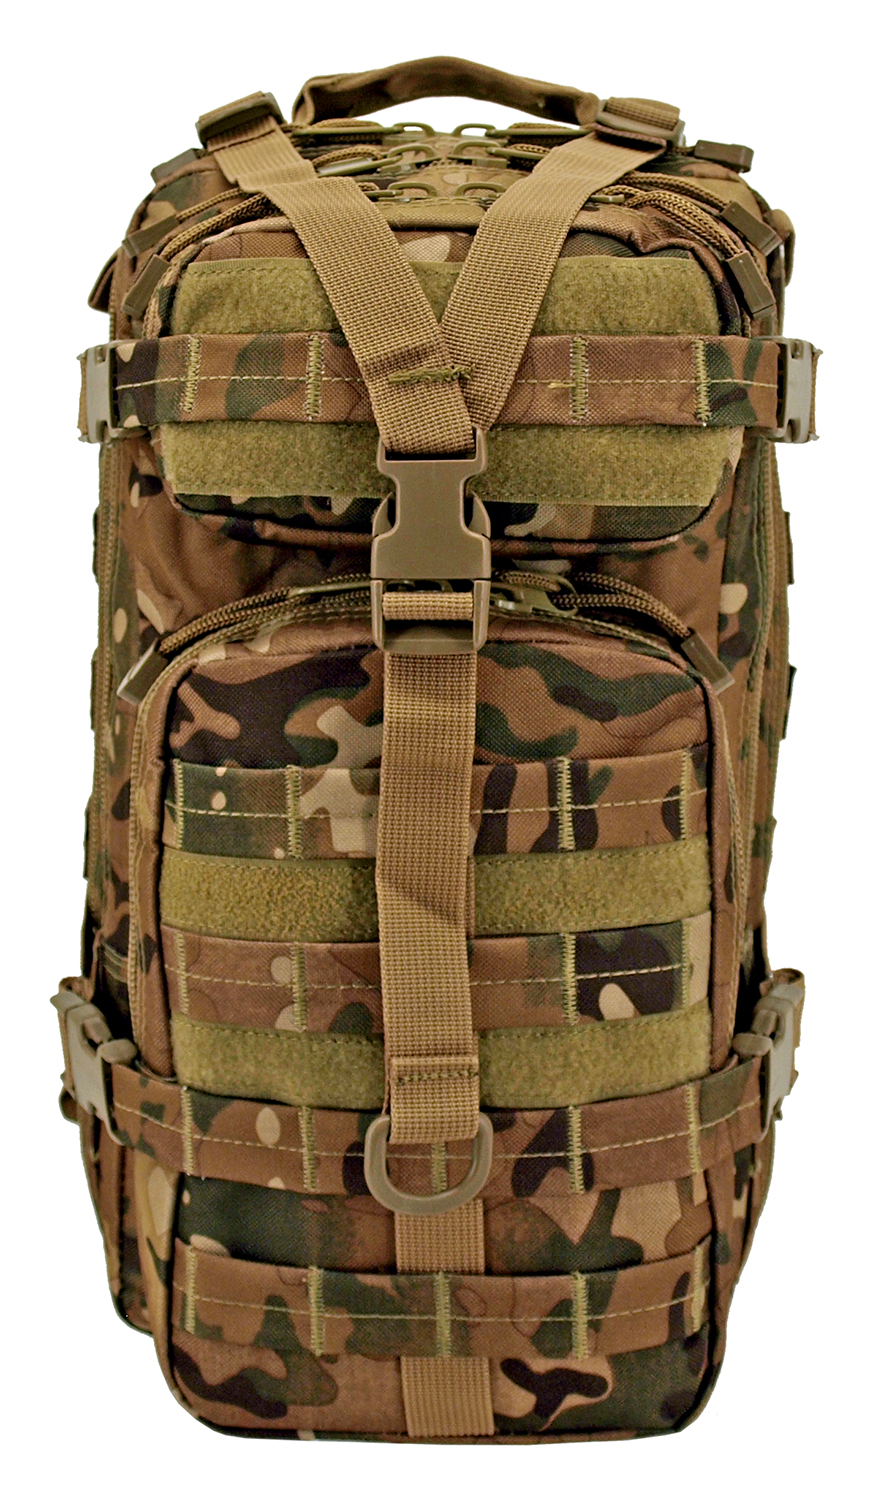 Tactical Assault Backpack - Multicam